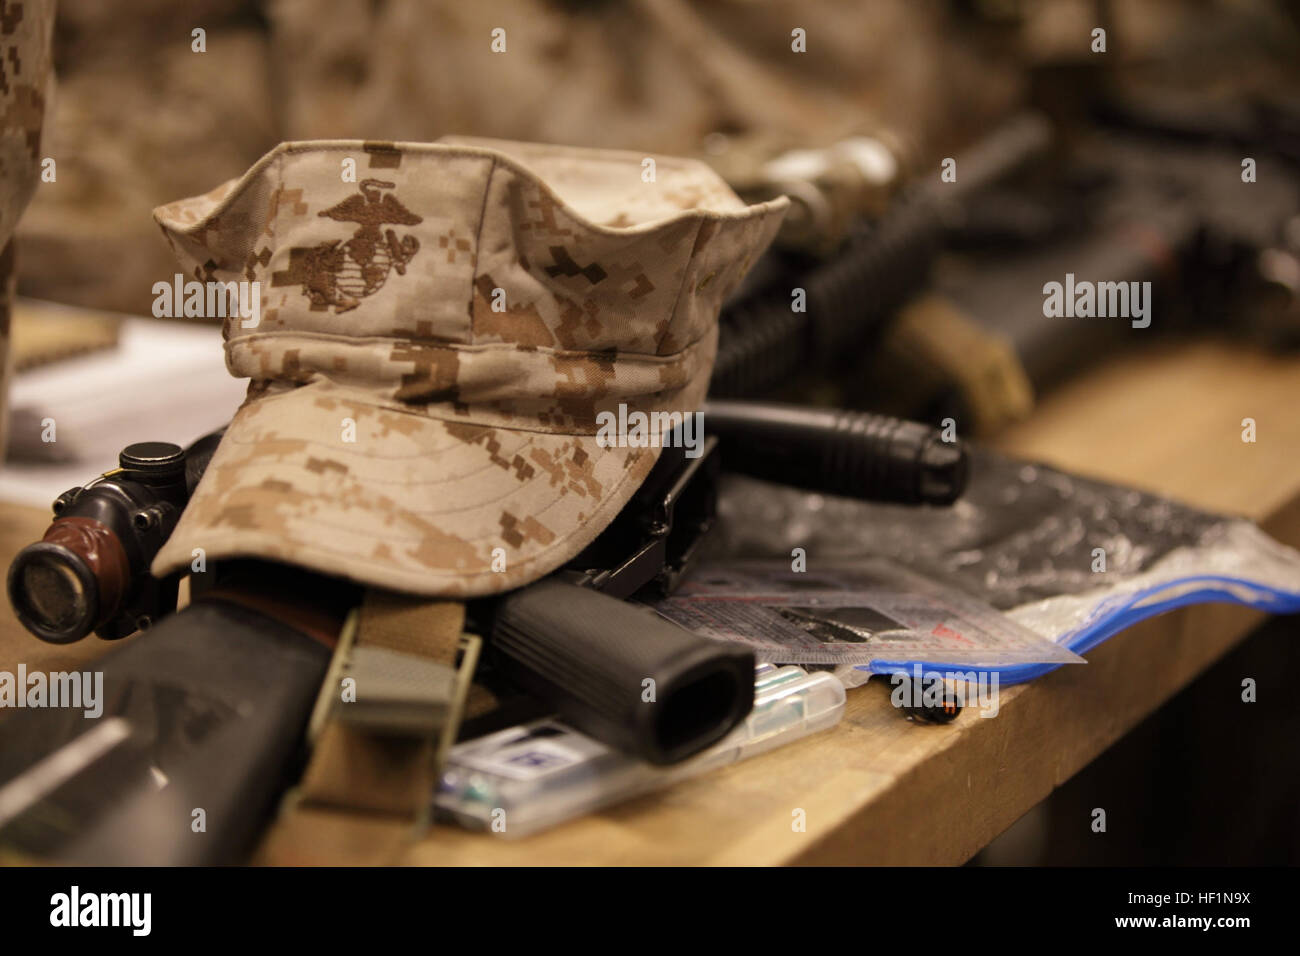 A U.S. Marine Corps desert utility eight point cover is shown atop of an M16 A4 service rifle during the Basic Infantryman's Stock Photo